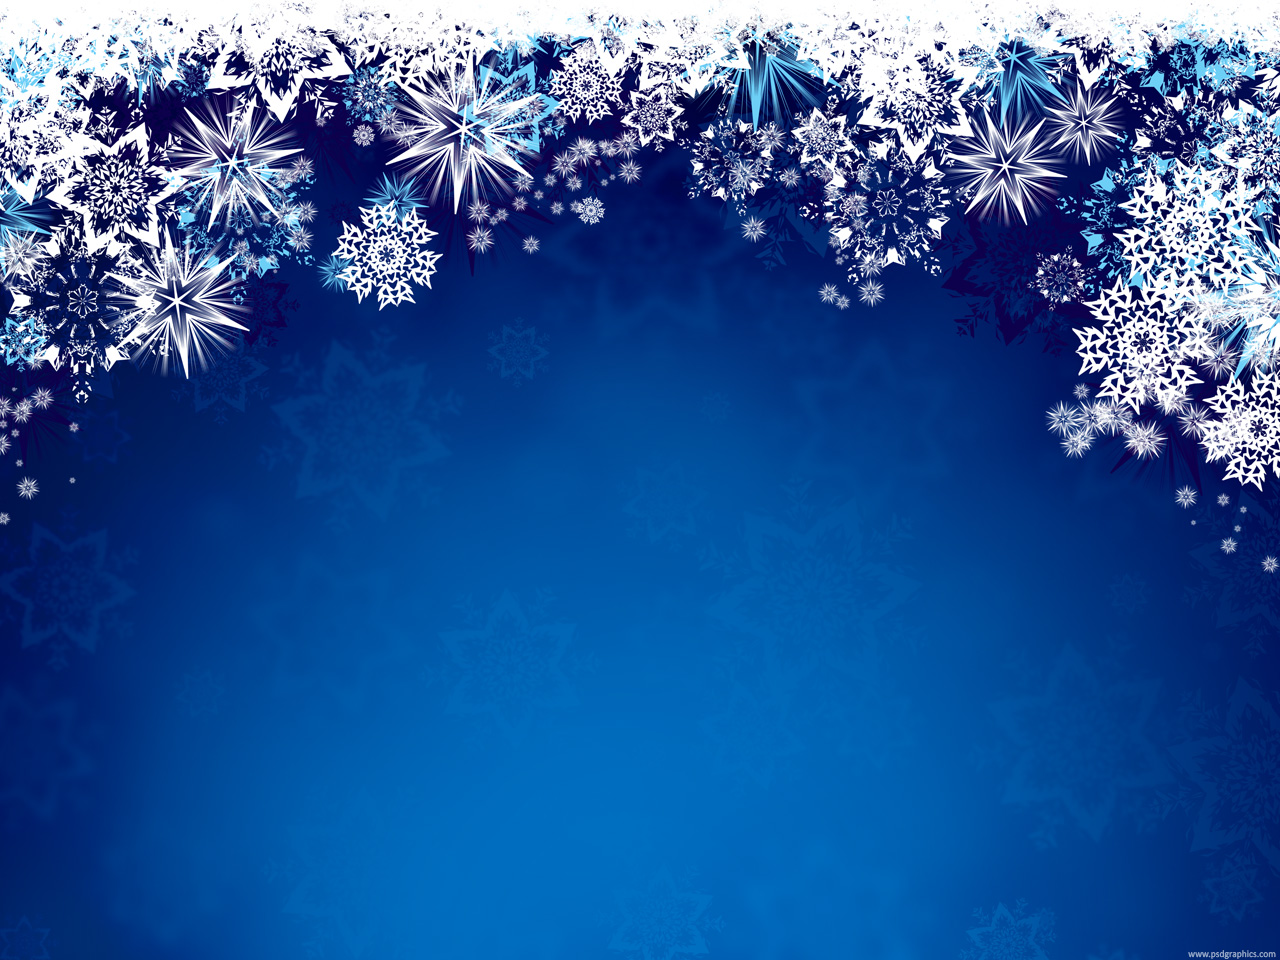 Winter Wallpaper Templates Medium size preview x px Blue winter background